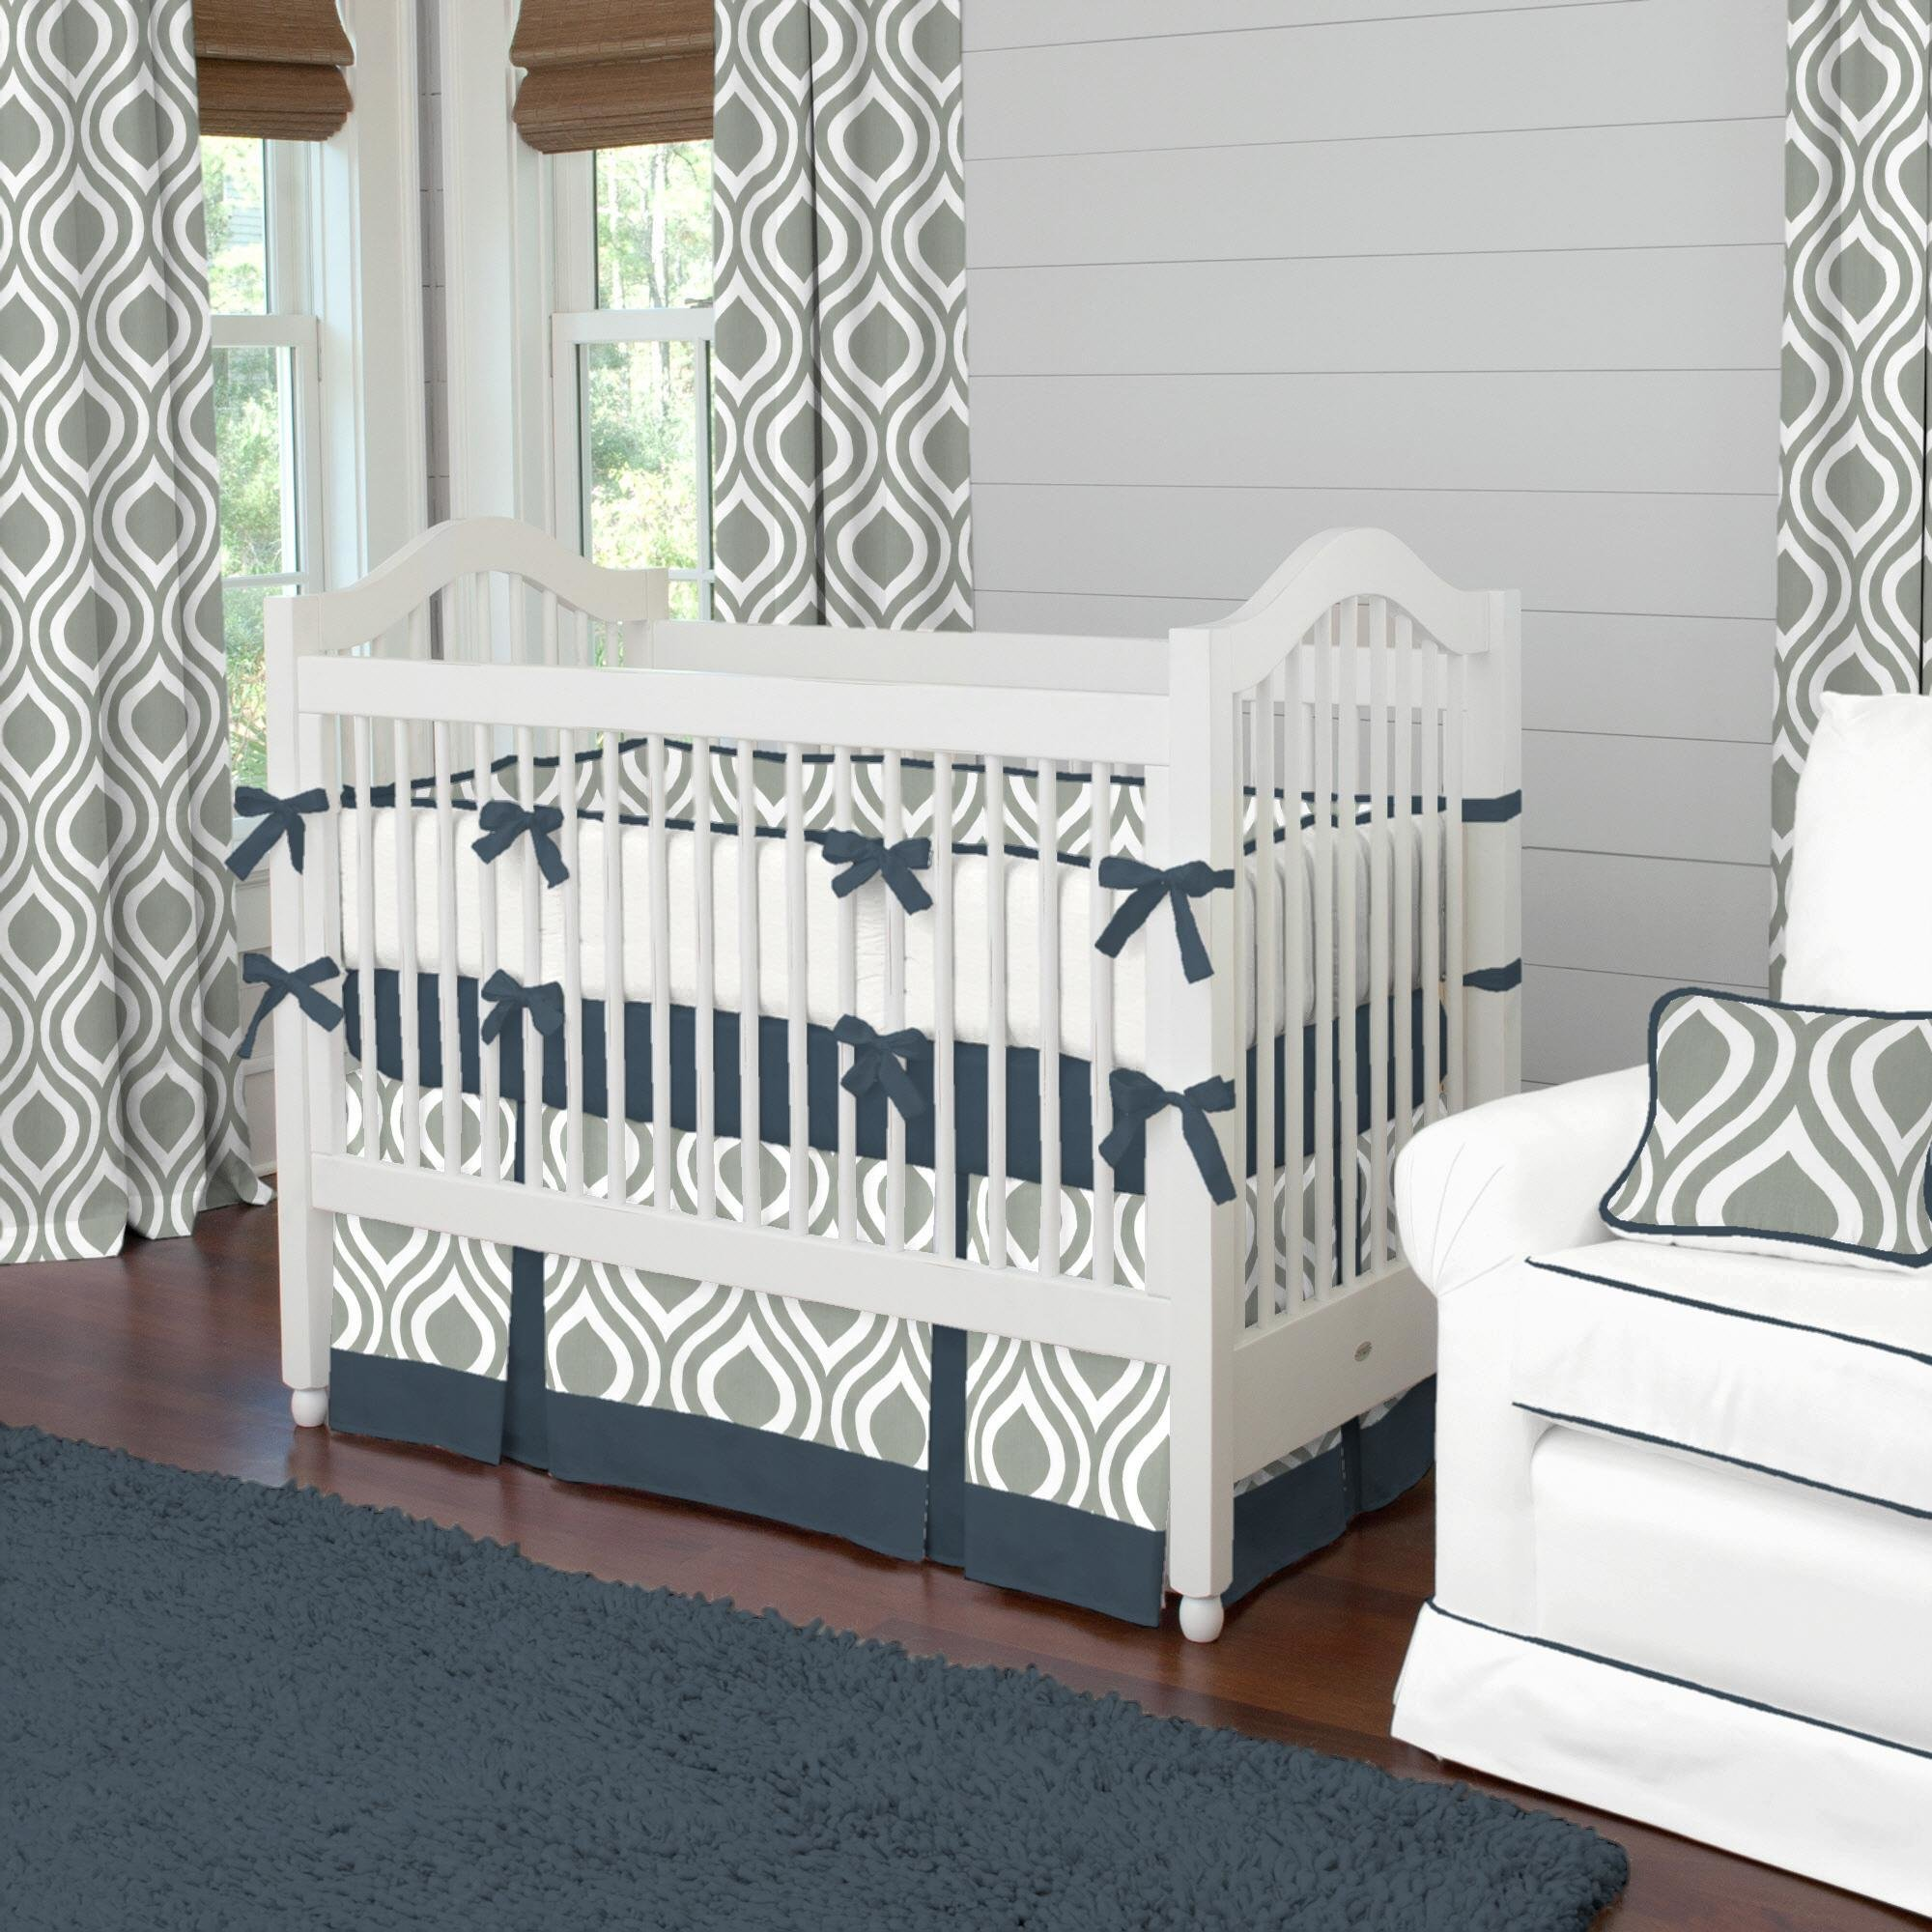 Best Gray And Navy Raindrops Crib Bedding Boy Baby Bedding With Pictures